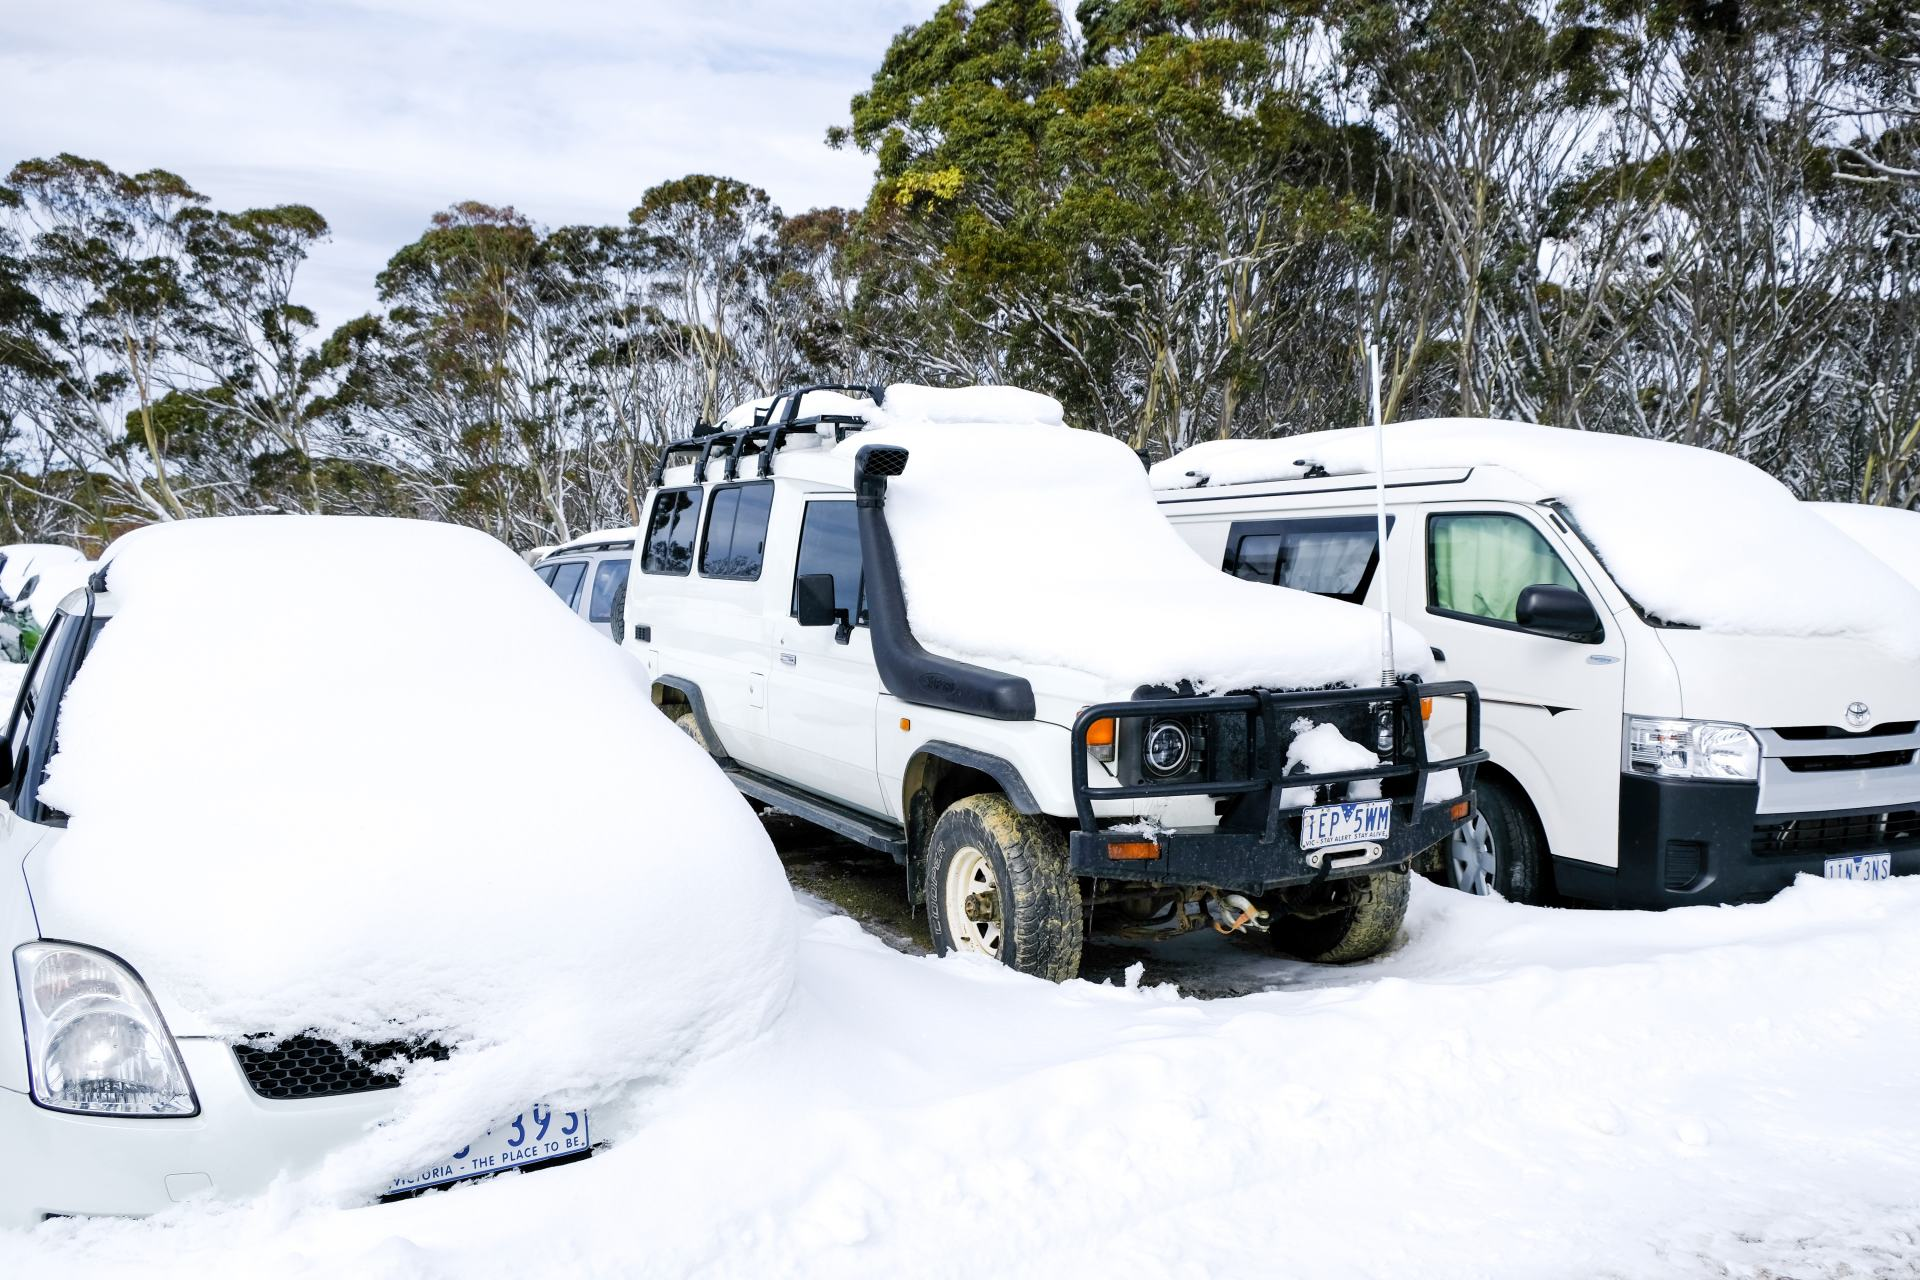 cars covered in snow at mount hotham